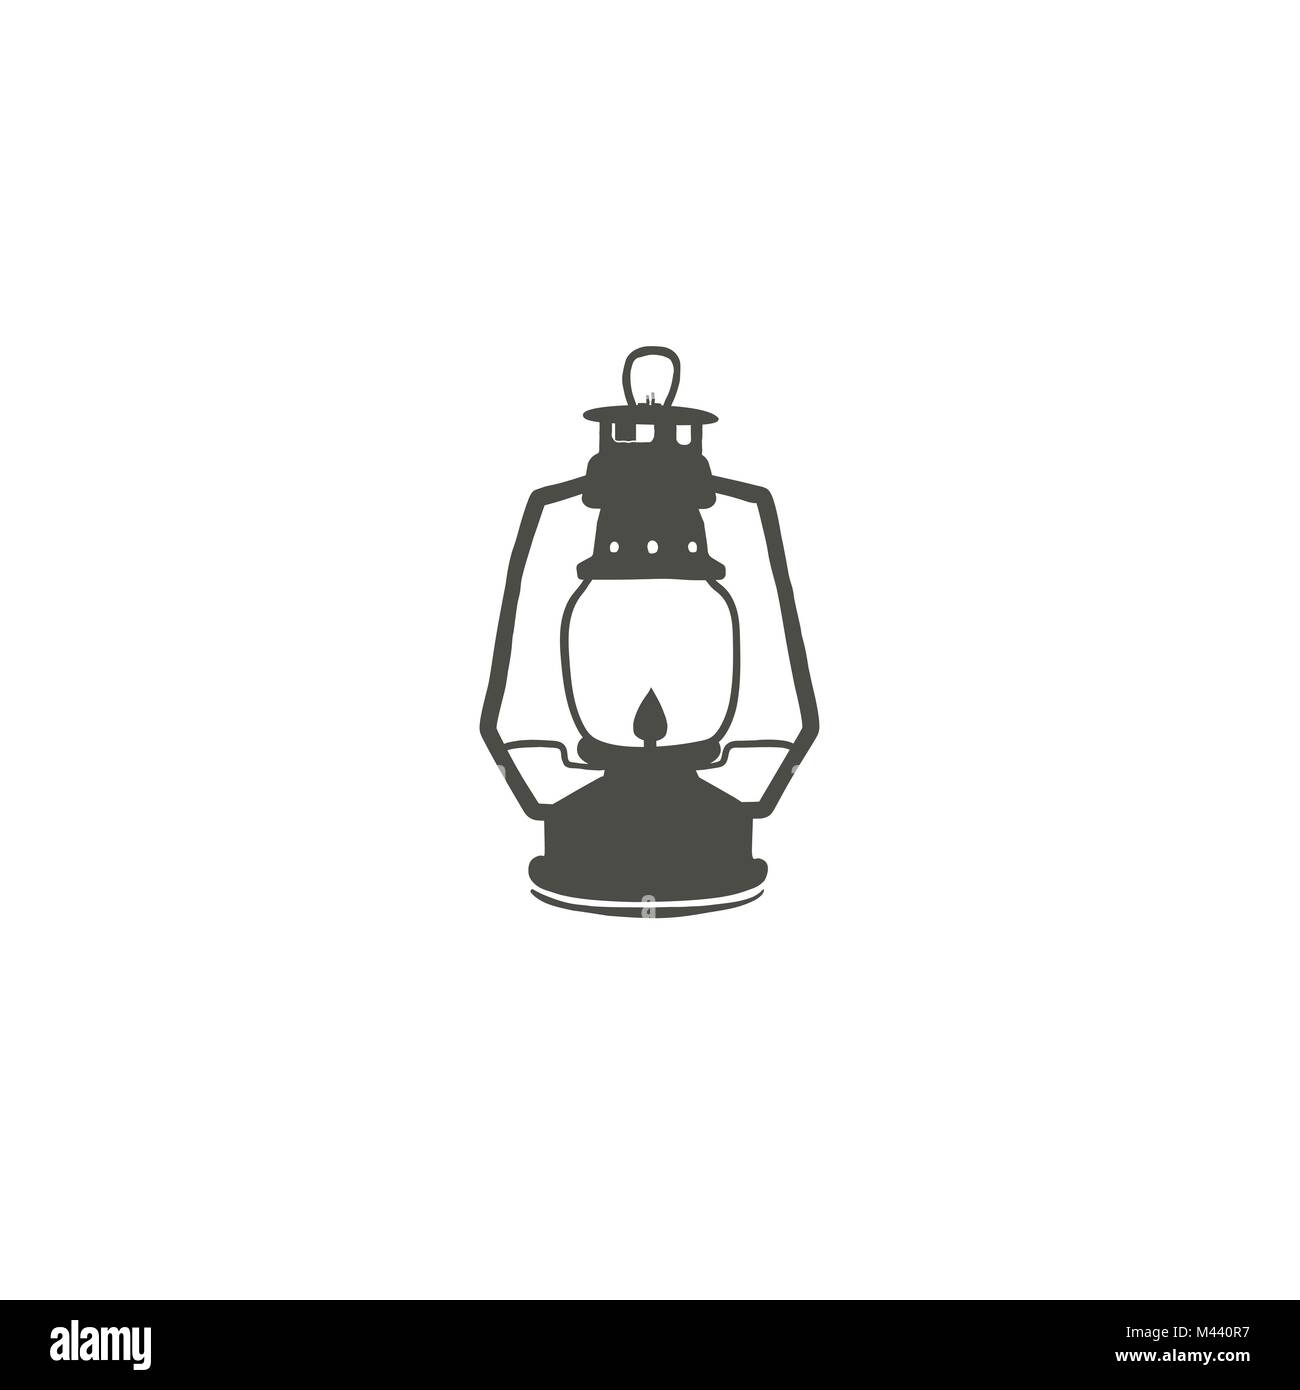 Camping lantern icon silhouette icon. Oil lamp black symbol, pictogram. Stock vector illustration isolated on white - Stock Image